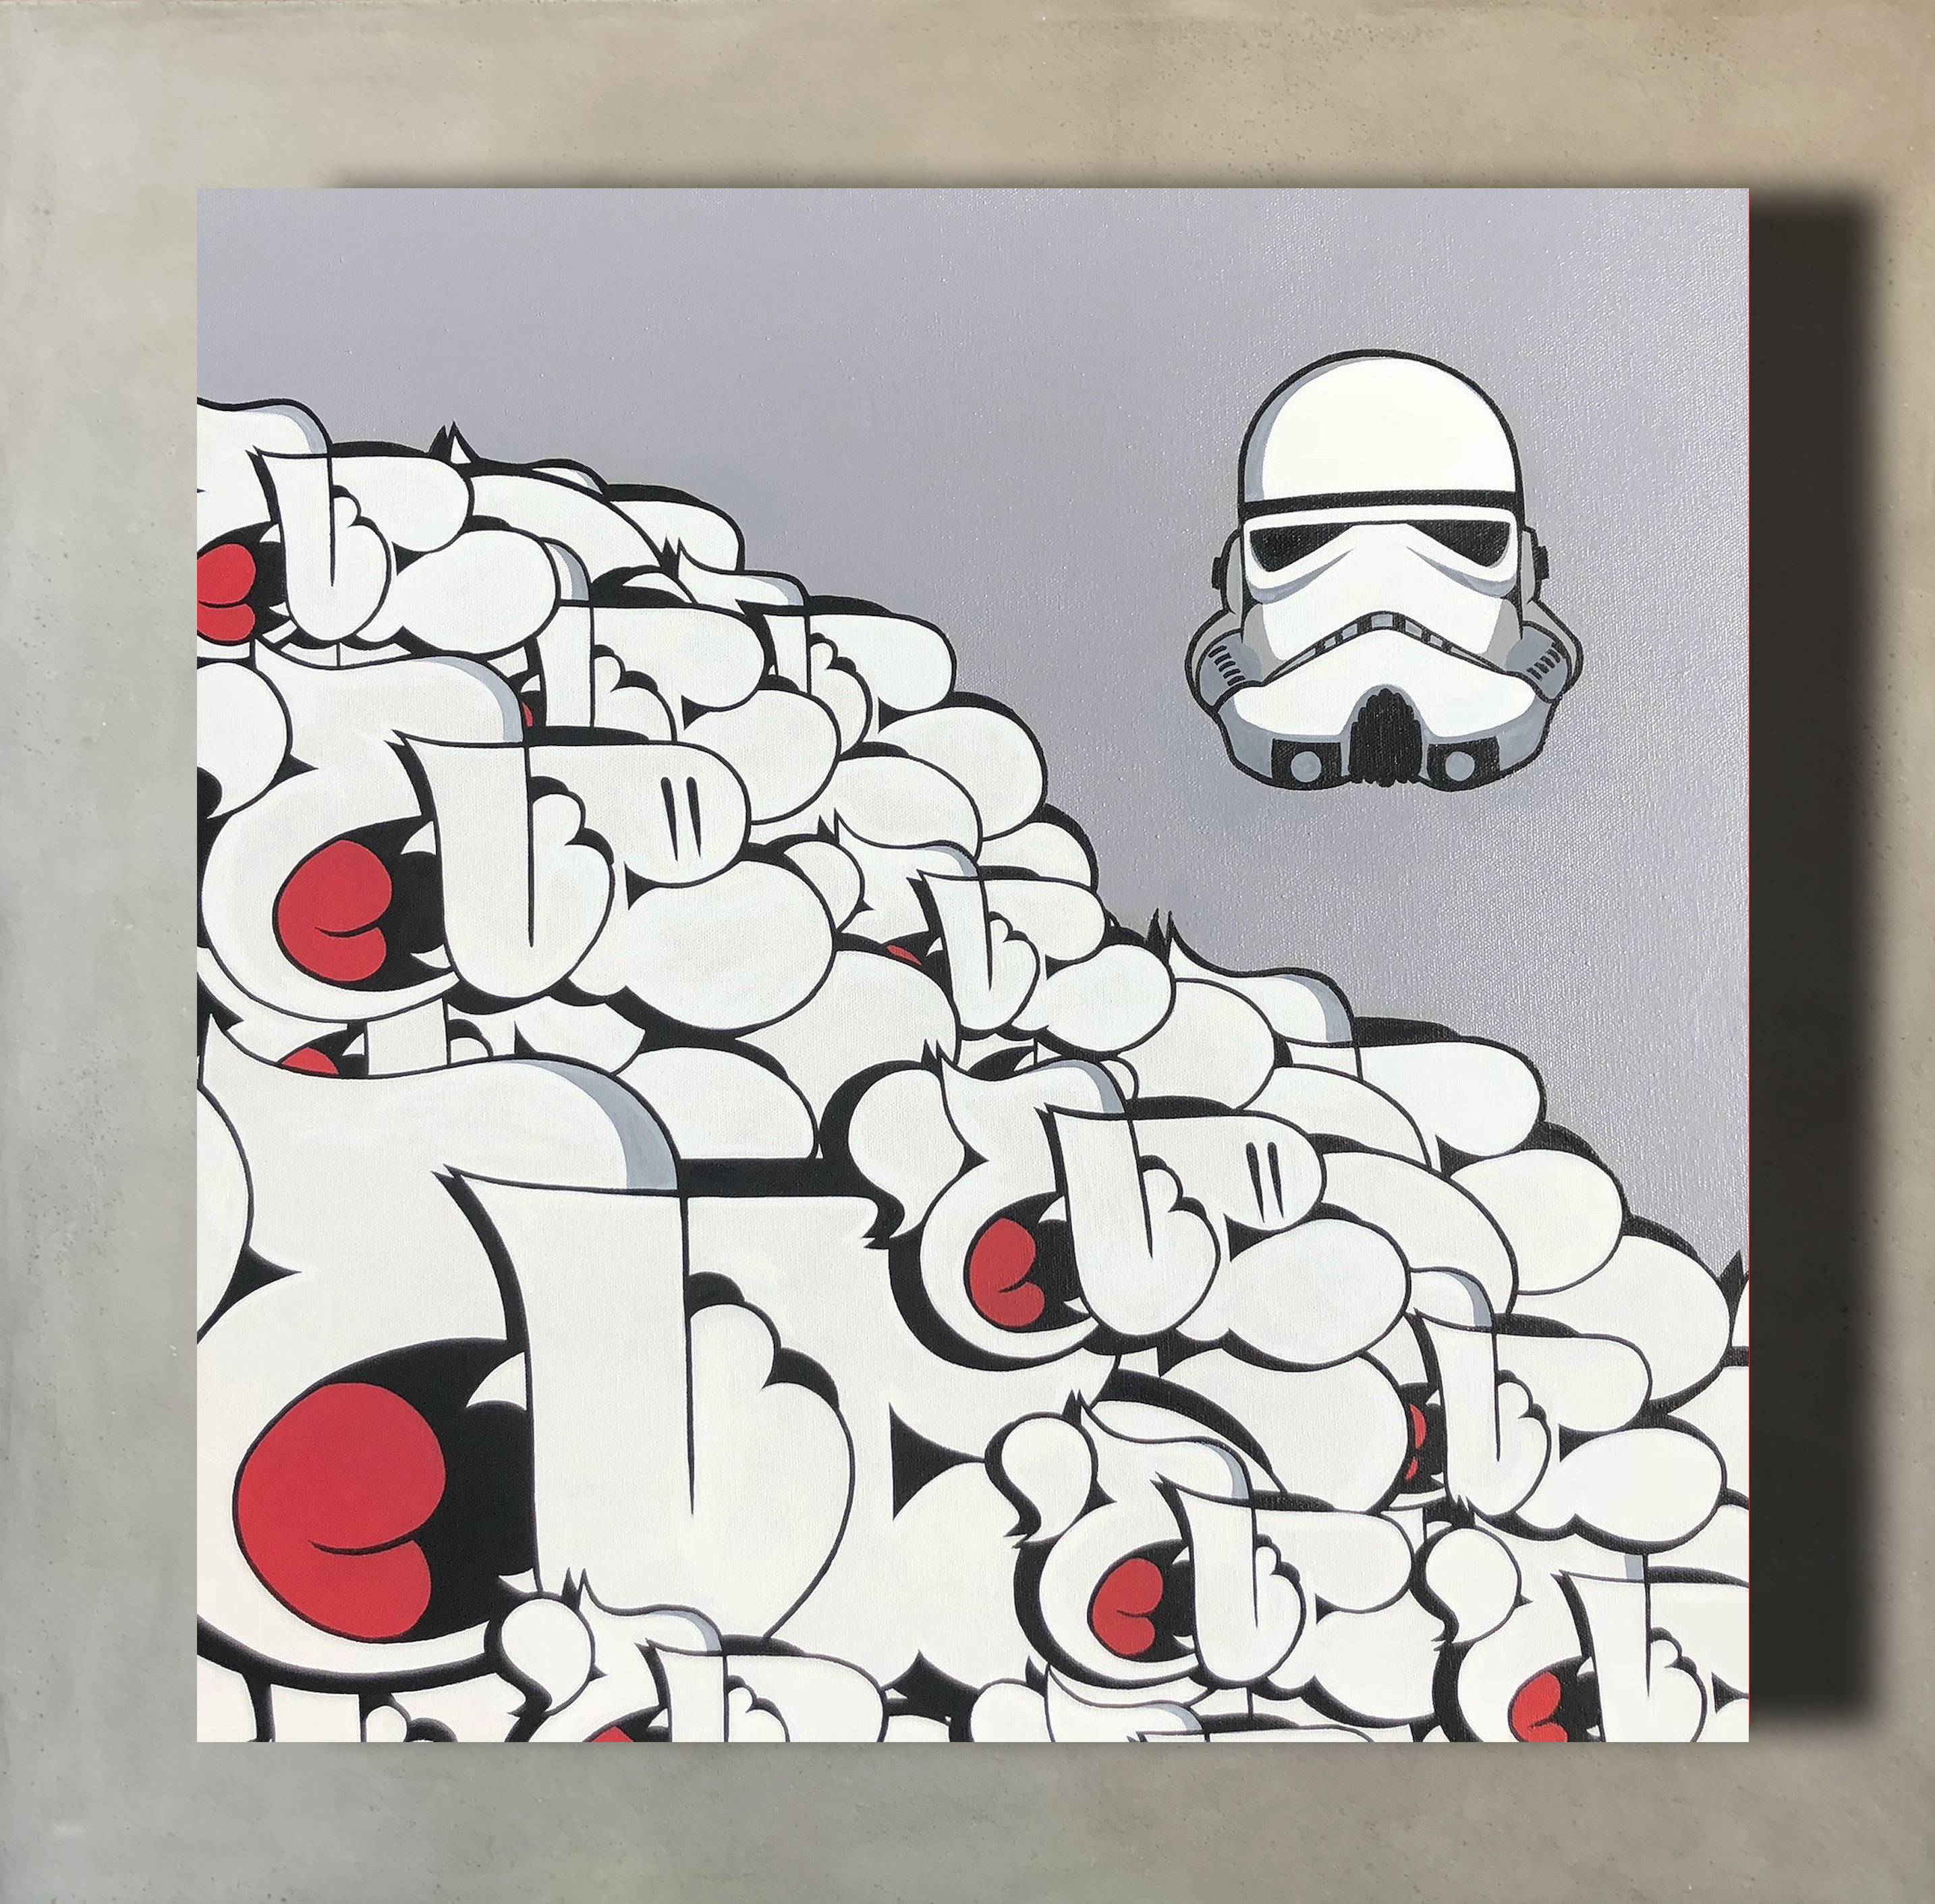 "Stormtrooper x Nover, 24x24"" Acrylic on Canvas, 2016."